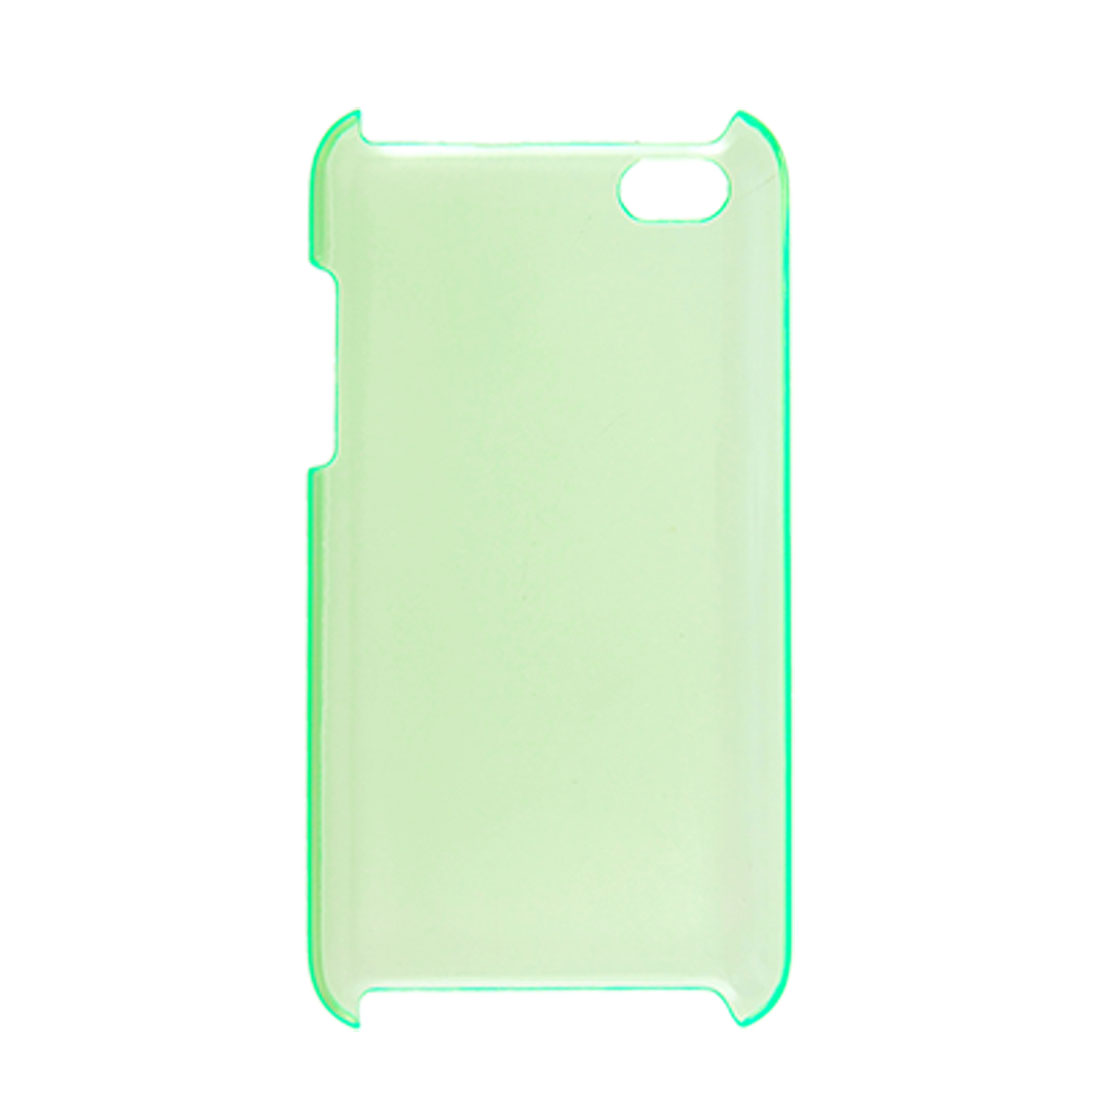 Clear Green Hard Plastic Case Cover for iPod Touch 4G